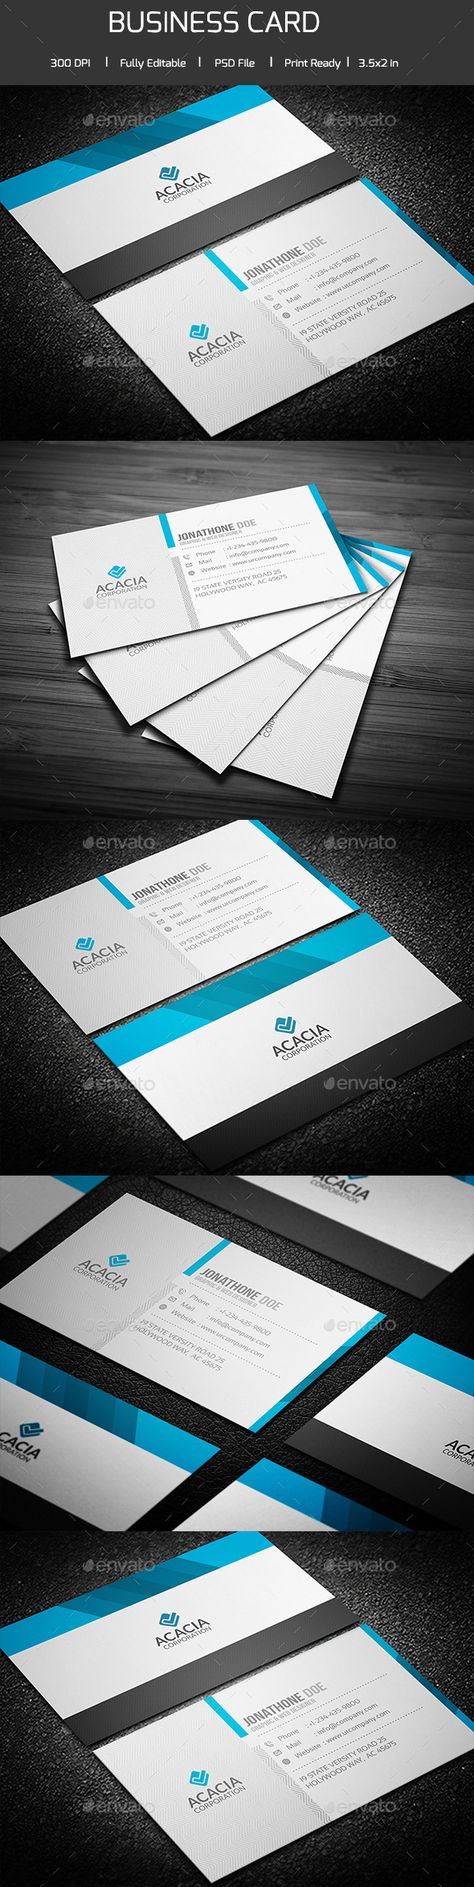 Business card star business card maker oukasfo tagsbusiness card star its easy to make your own businessbusiness card star make business cardsmake free business cards degraevecombusiness card and reheart Images